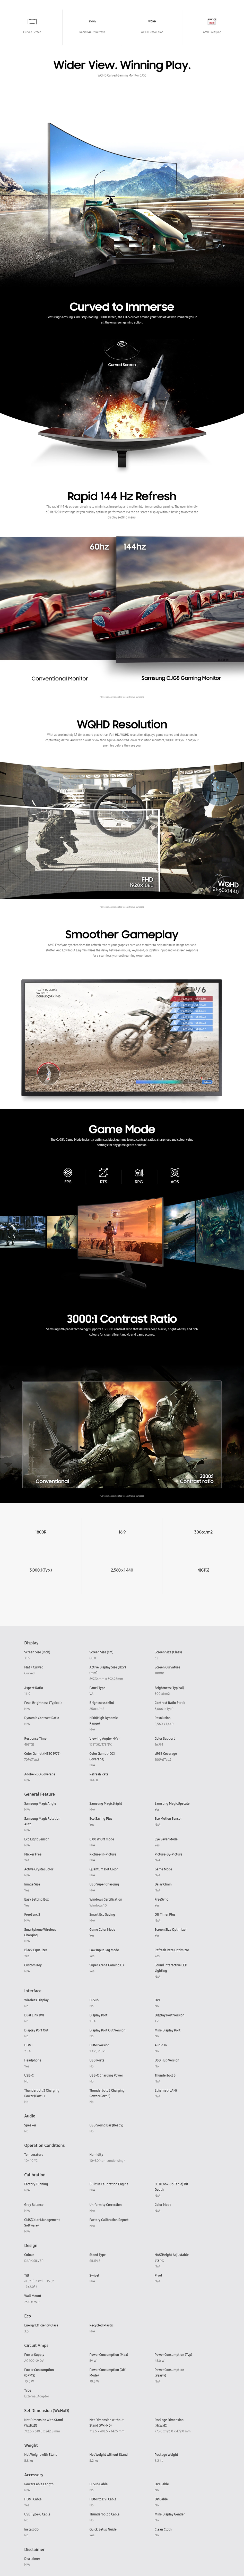 """A large marketing image providing additional information about the product Samsung CJG54 32"""" WQHD FreeSync 2 Curved 144Hz 4MS VA LED Gaming Monitor  - Additional alt info not provided"""